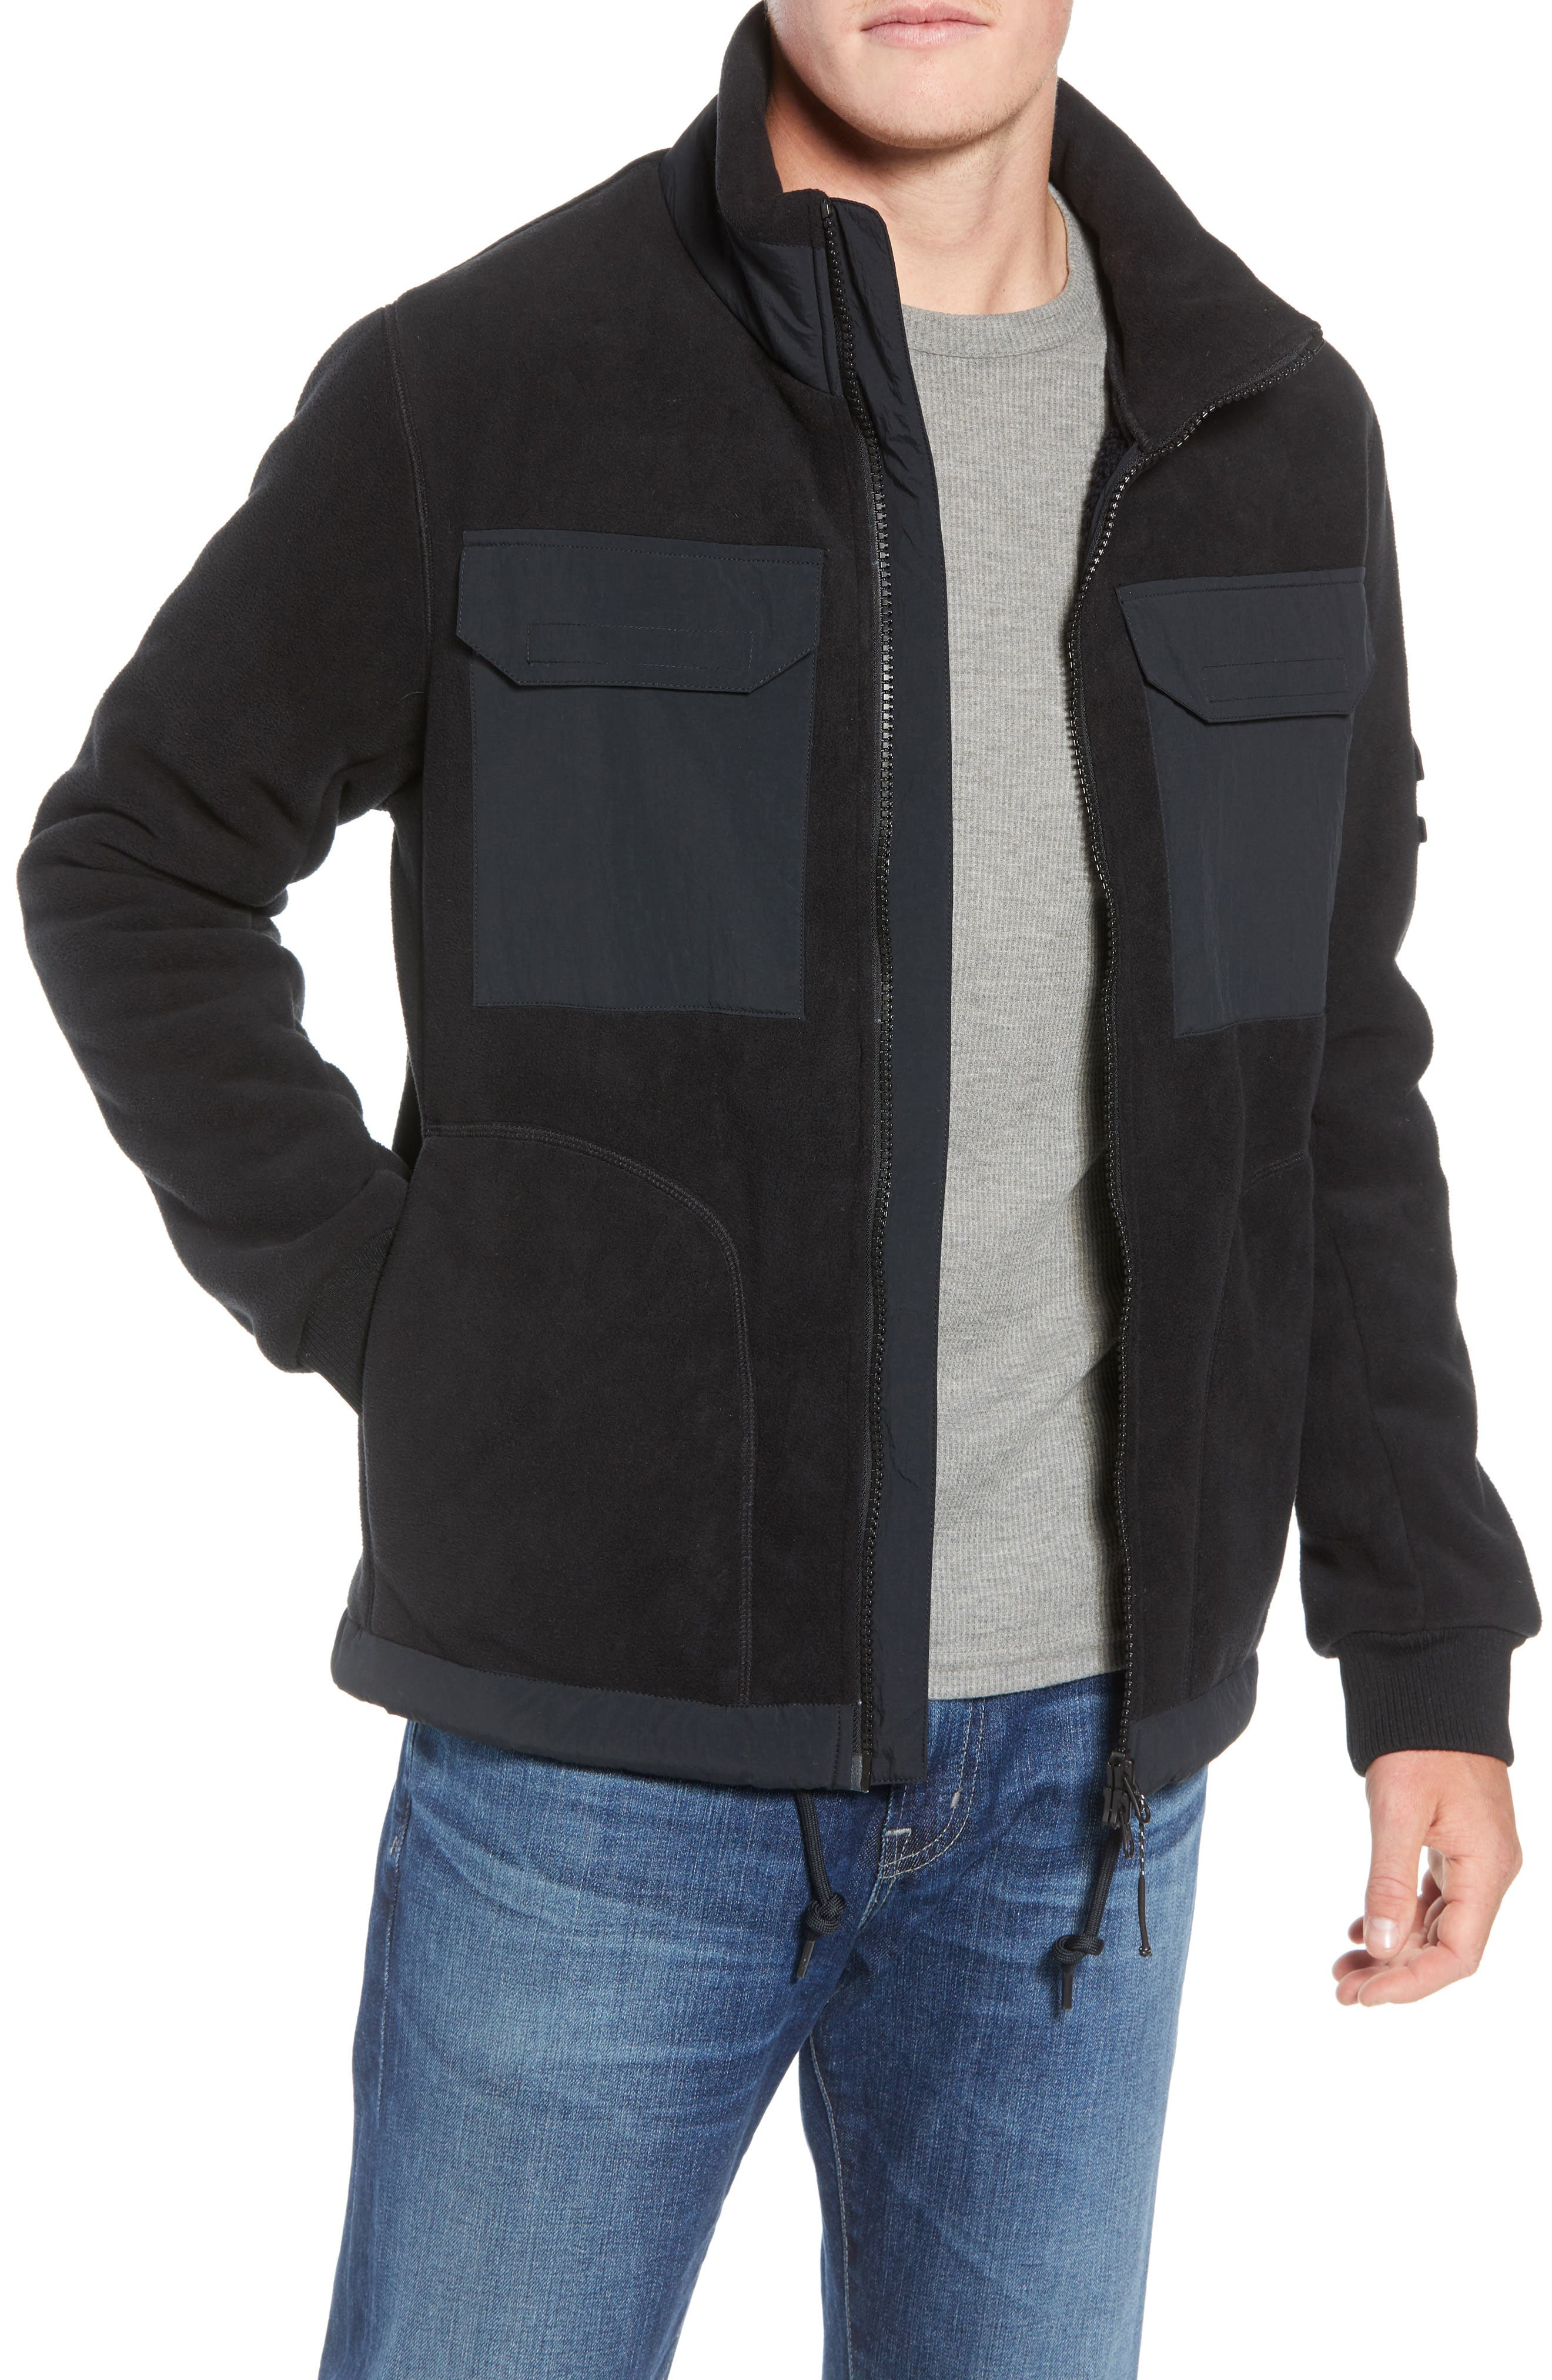 Schoening Zip Fleece Jacket,                         Main,                         color, BLACK